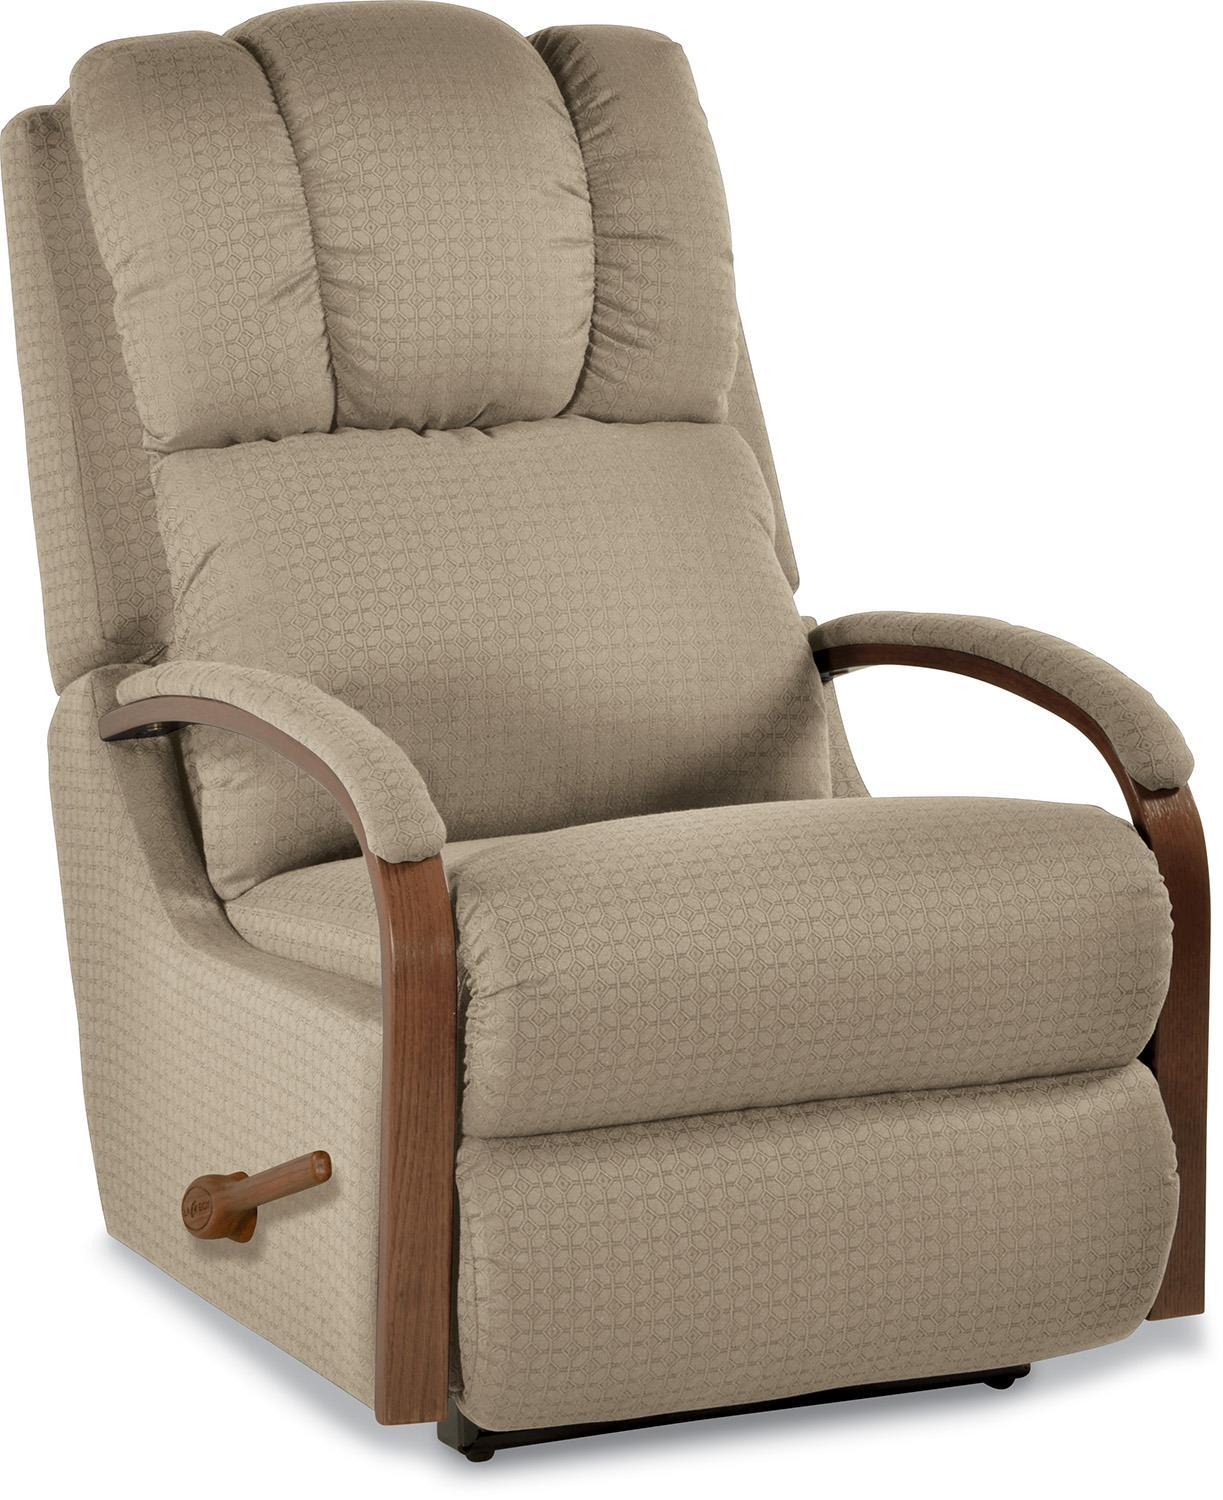 Harbor Town Reclina-Way® Reclining Chair  sc 1 st  Wolf Furniture & Harbor Town Reclina-Way® Reclining Chair by La-Z-Boy | Wolf and ... islam-shia.org